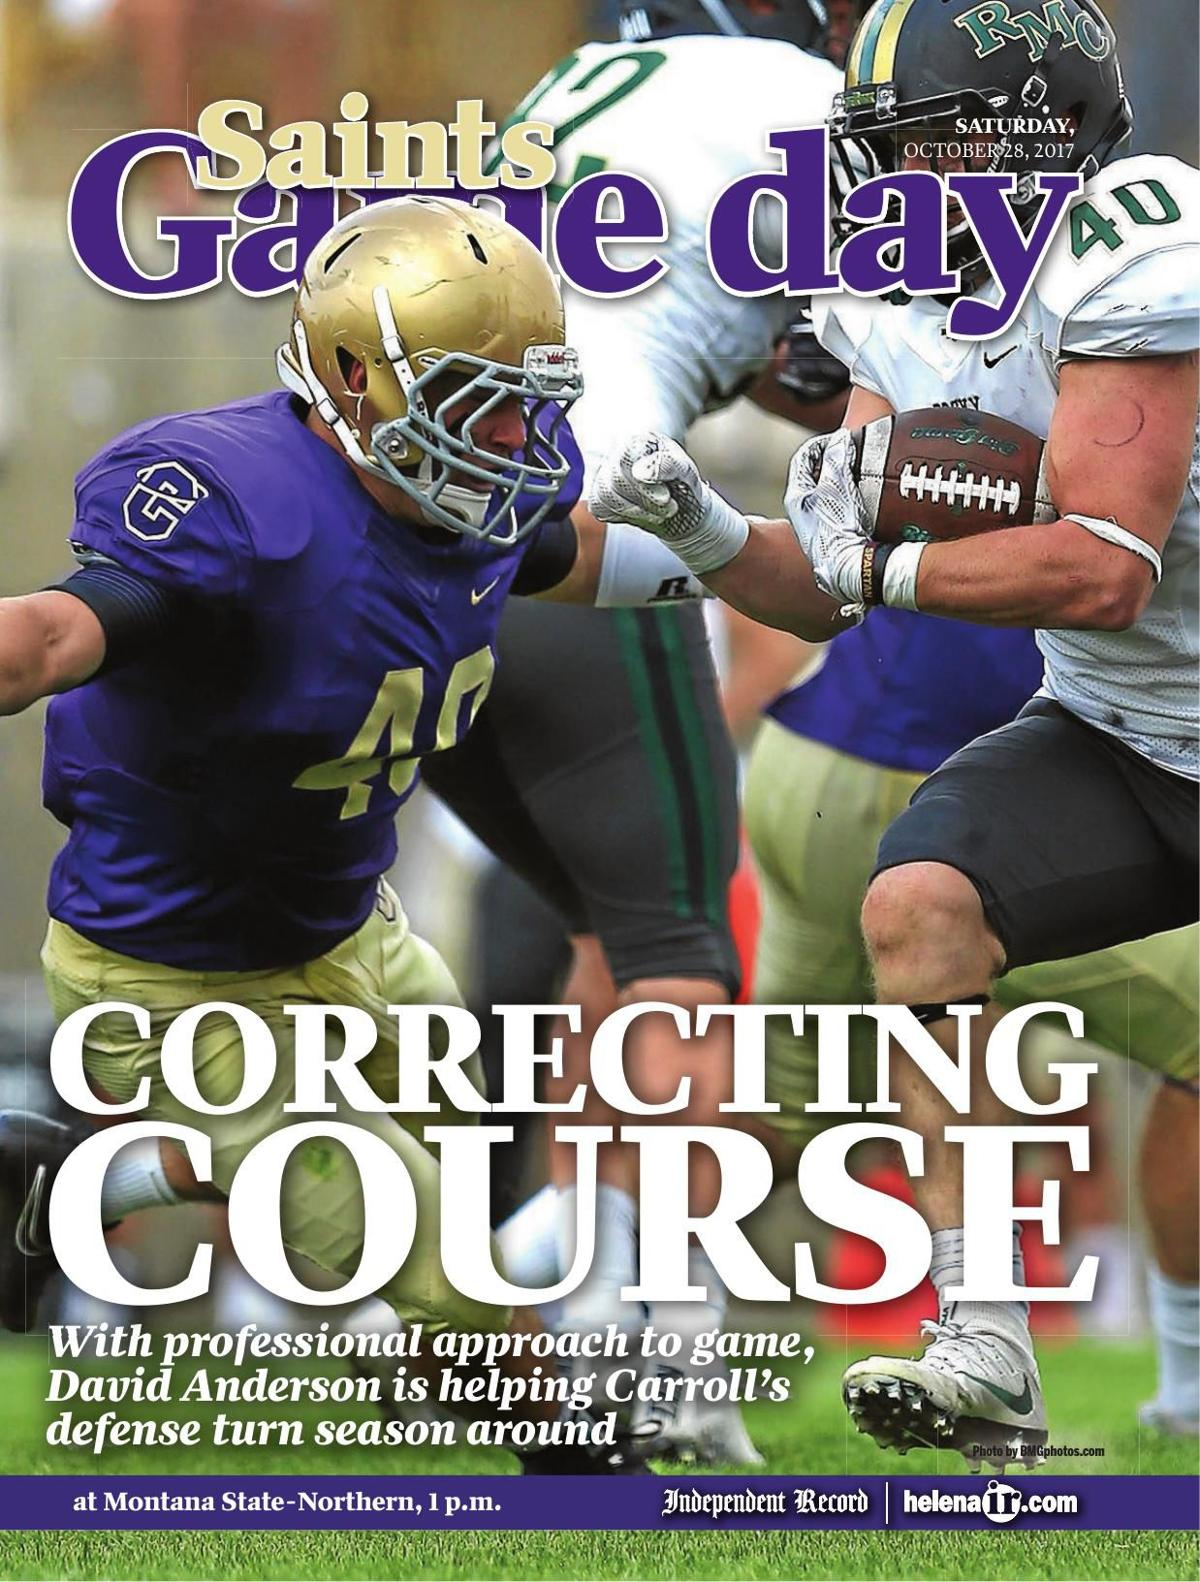 Helena Carroll College Saints Game Day - 10/28/17